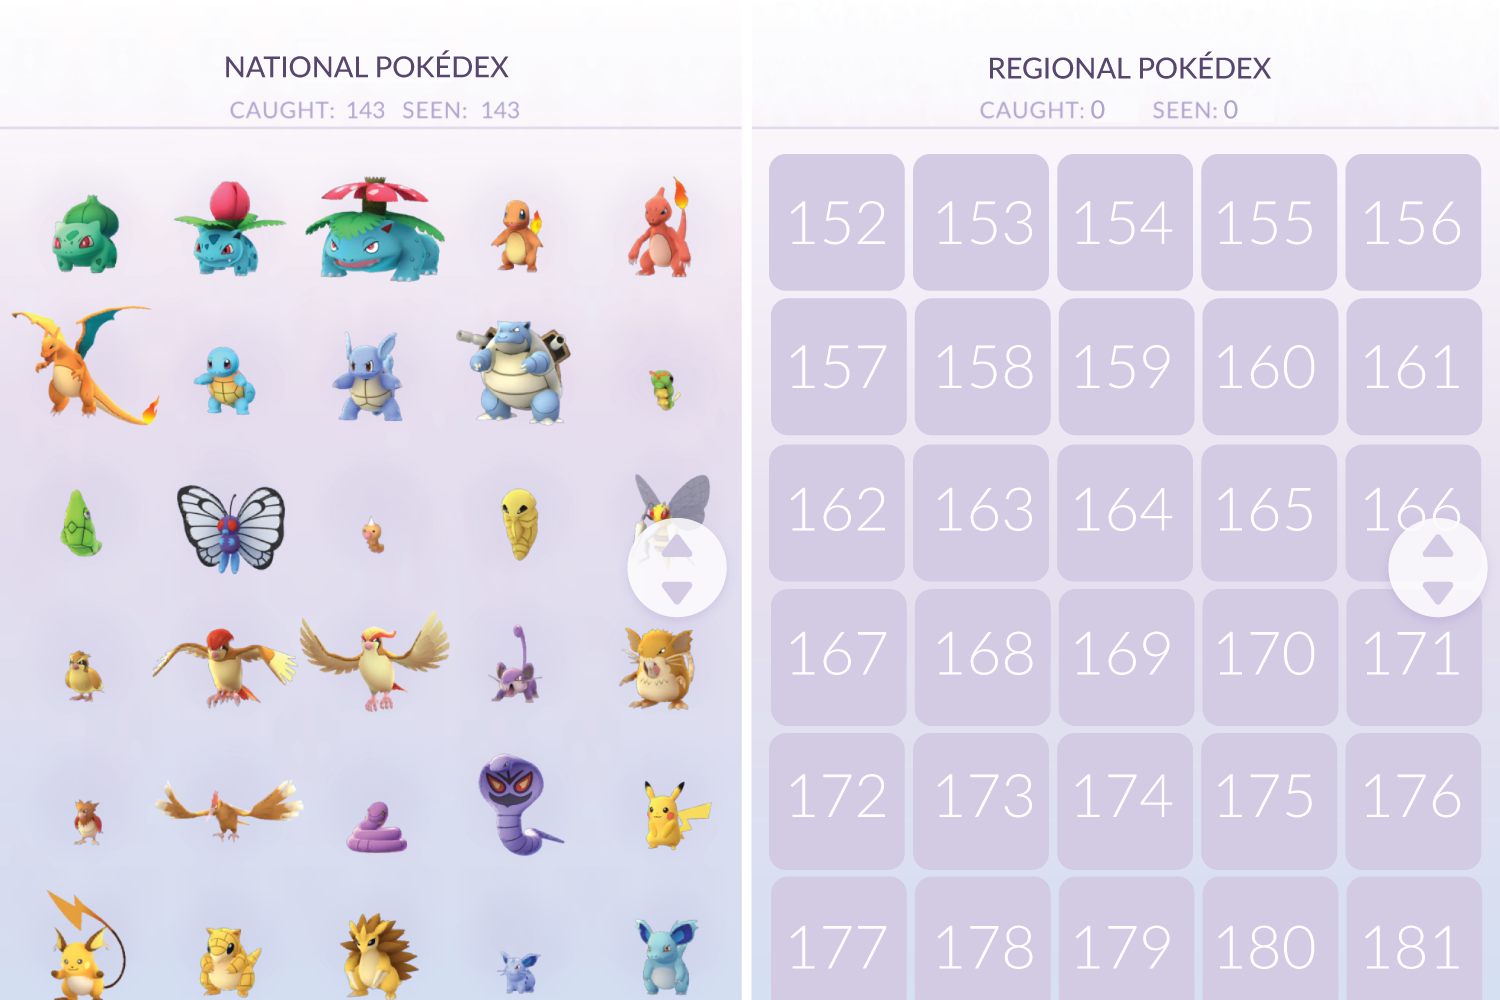 What the regional vs. national Pokedex could look like